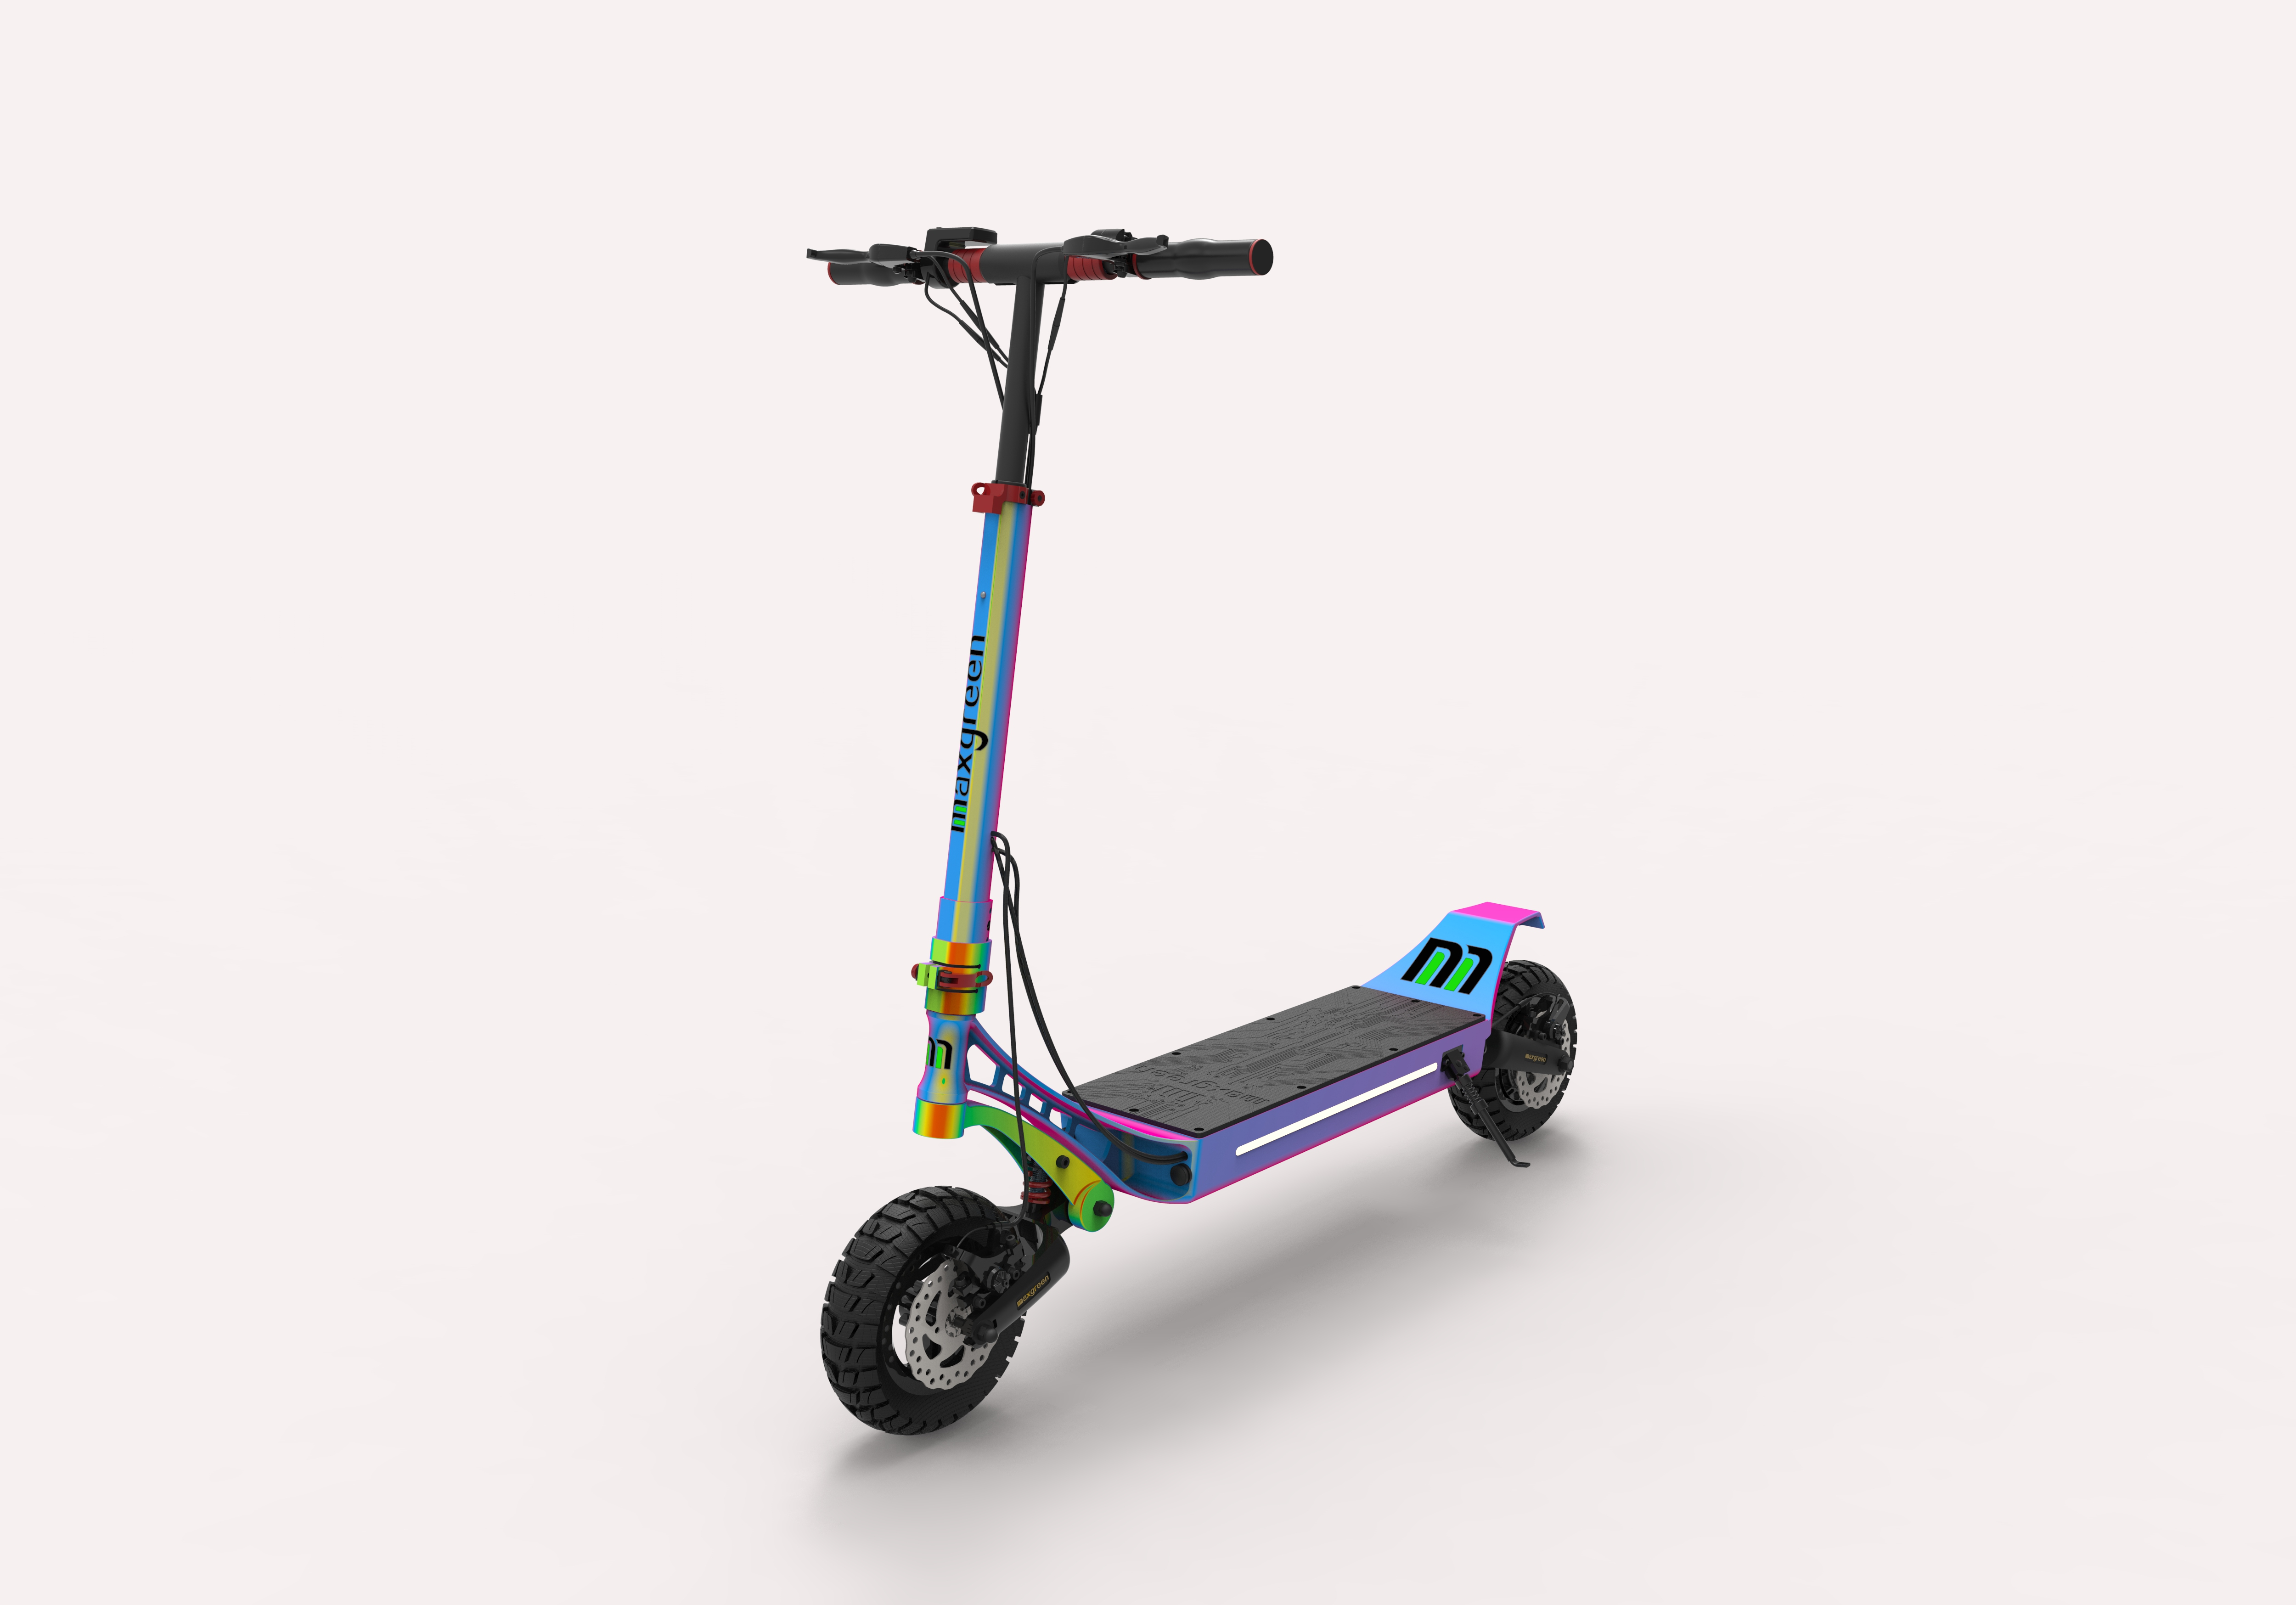 Blade 10 Electric Scooter